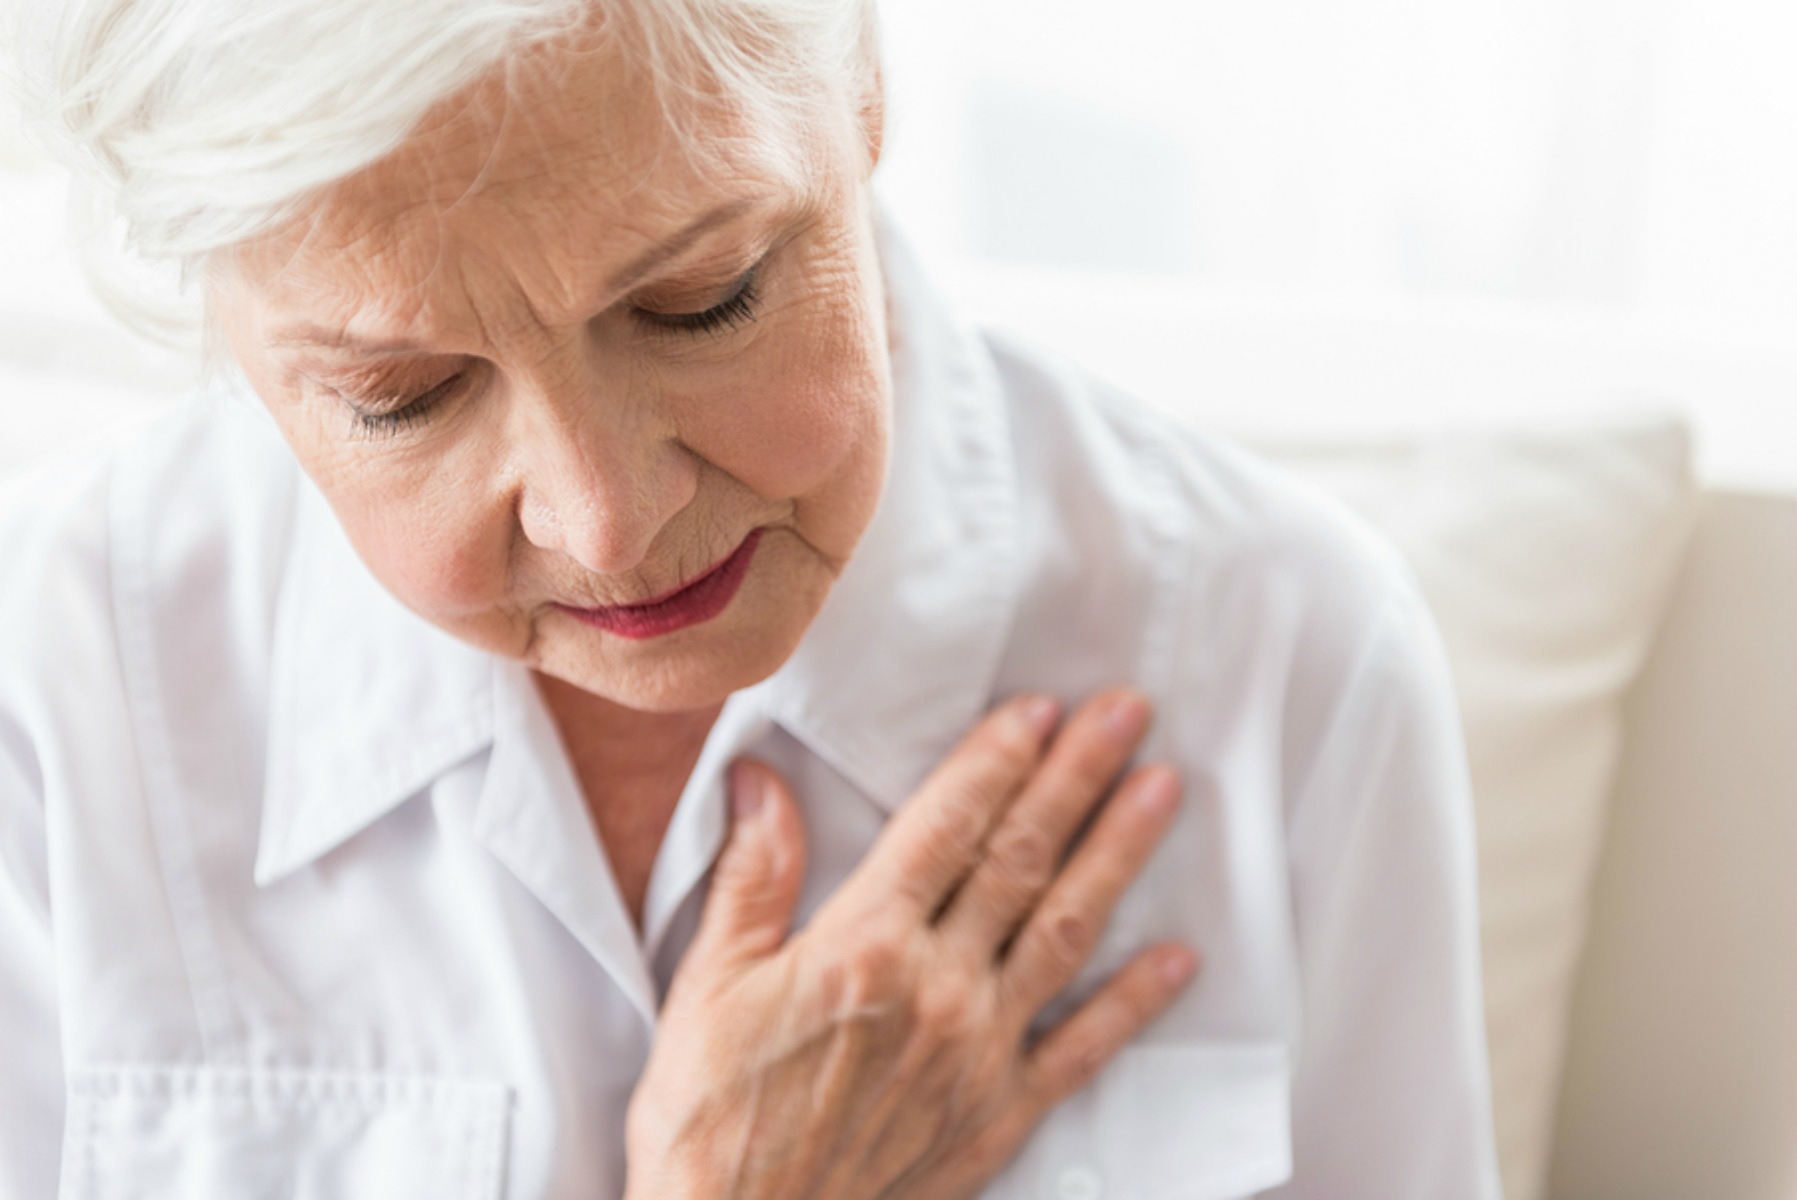 Home Care Services in Peoria AZ: Breathing Too Shallowly